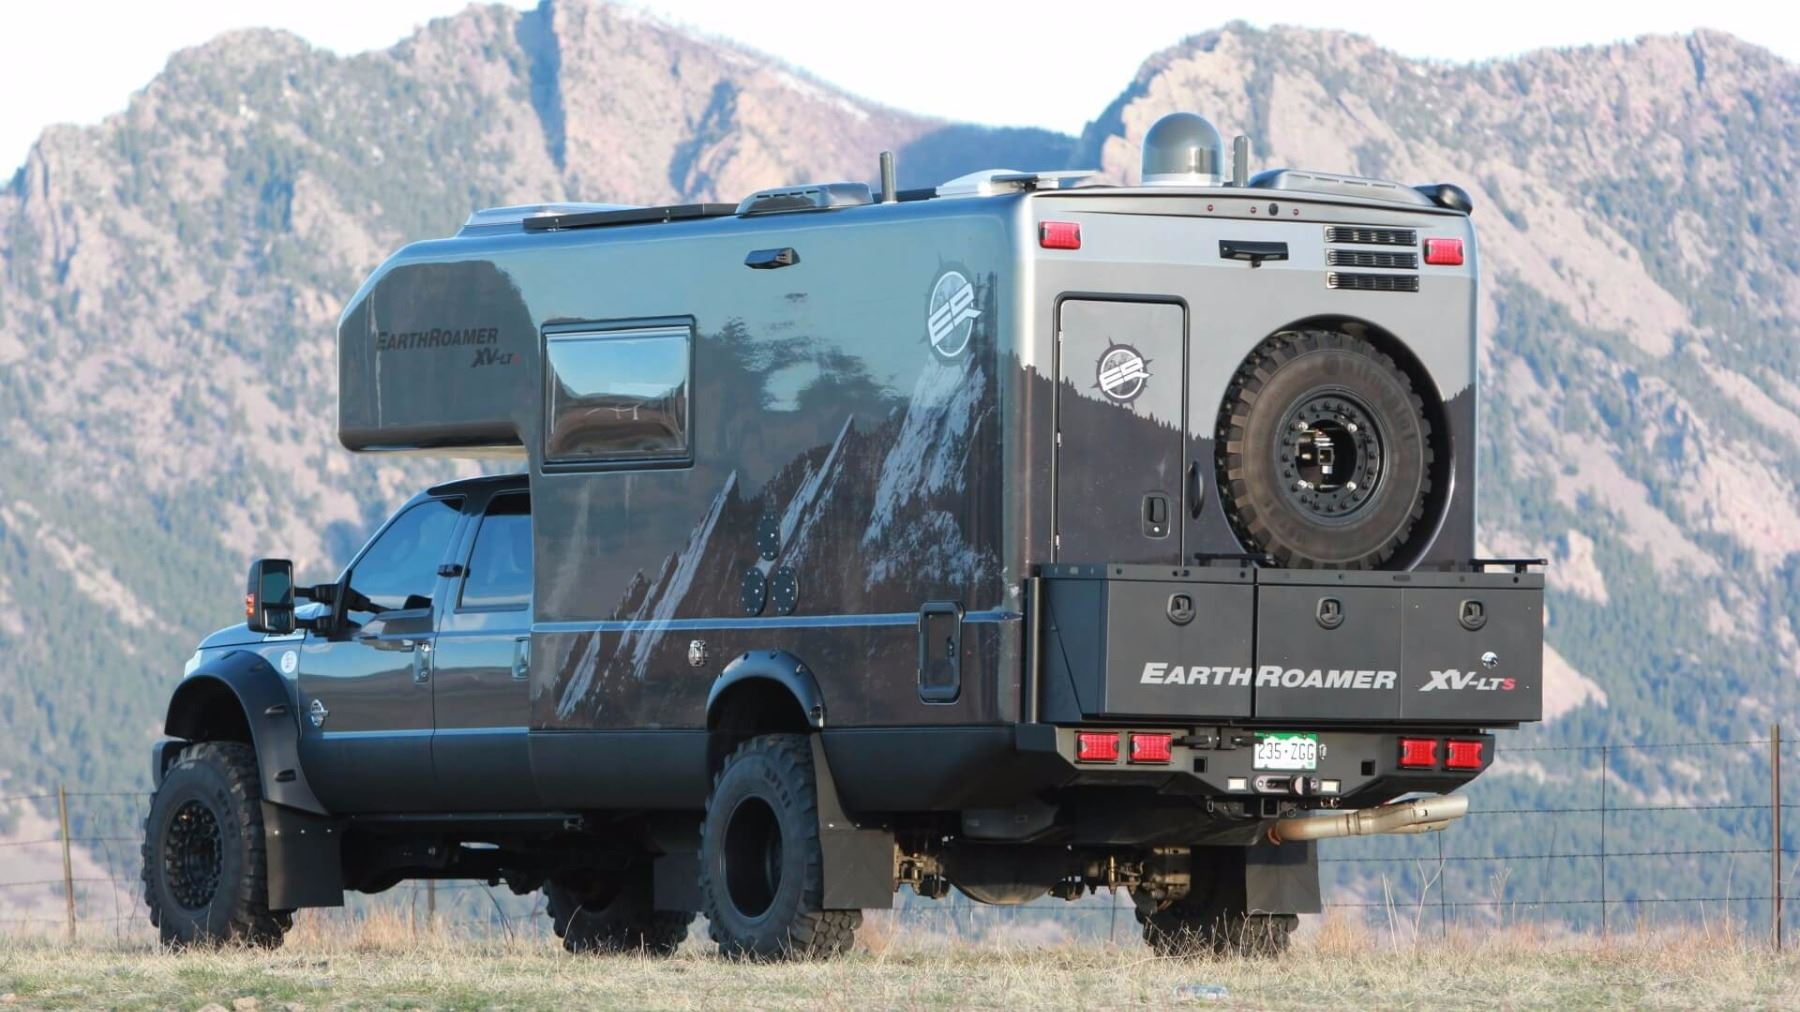 USA Shooting Team and EarthRoamer All Terrain Vehicle Weekend Experience in  Colorado for Four Guests